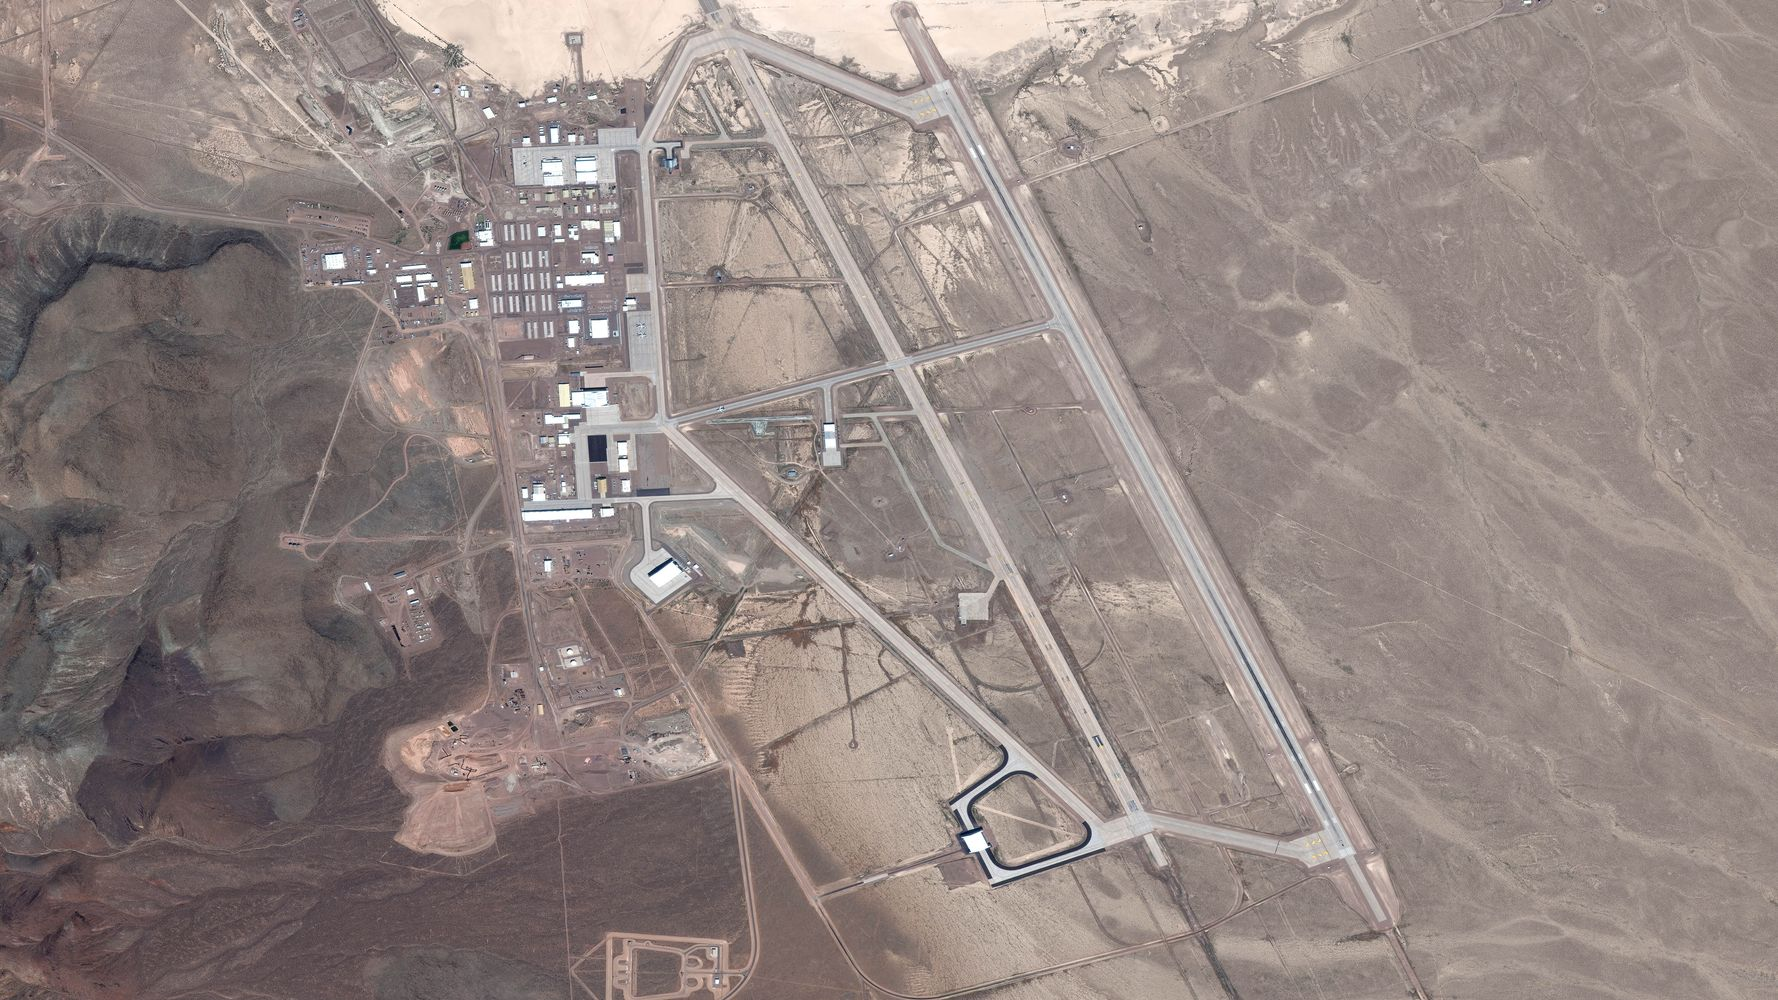 Feds Warn Alien Seekers Not To Try Their Luck At Area 51